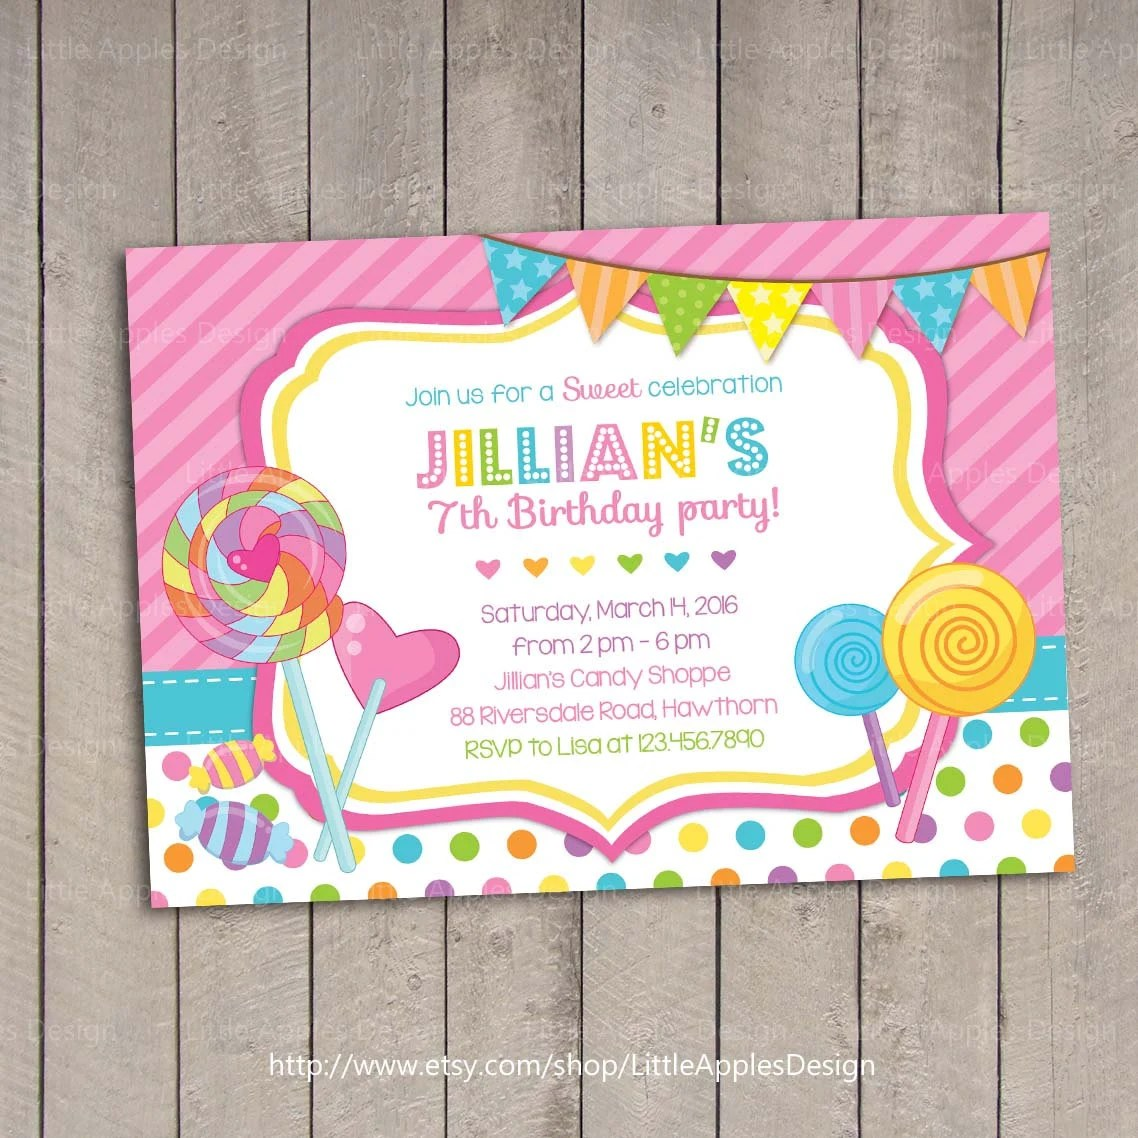 Lollipop Invitation Candyland Invitation Candyland